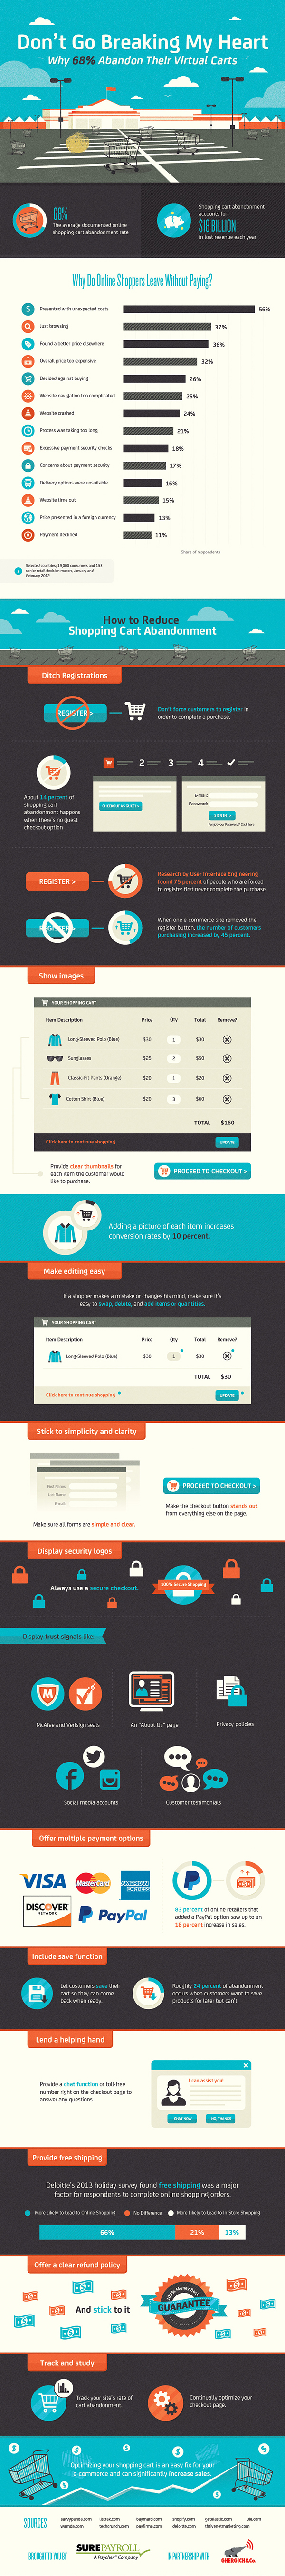 Ecommerce Tips Why Visitors Abandon Their Purchases and How to Stop It